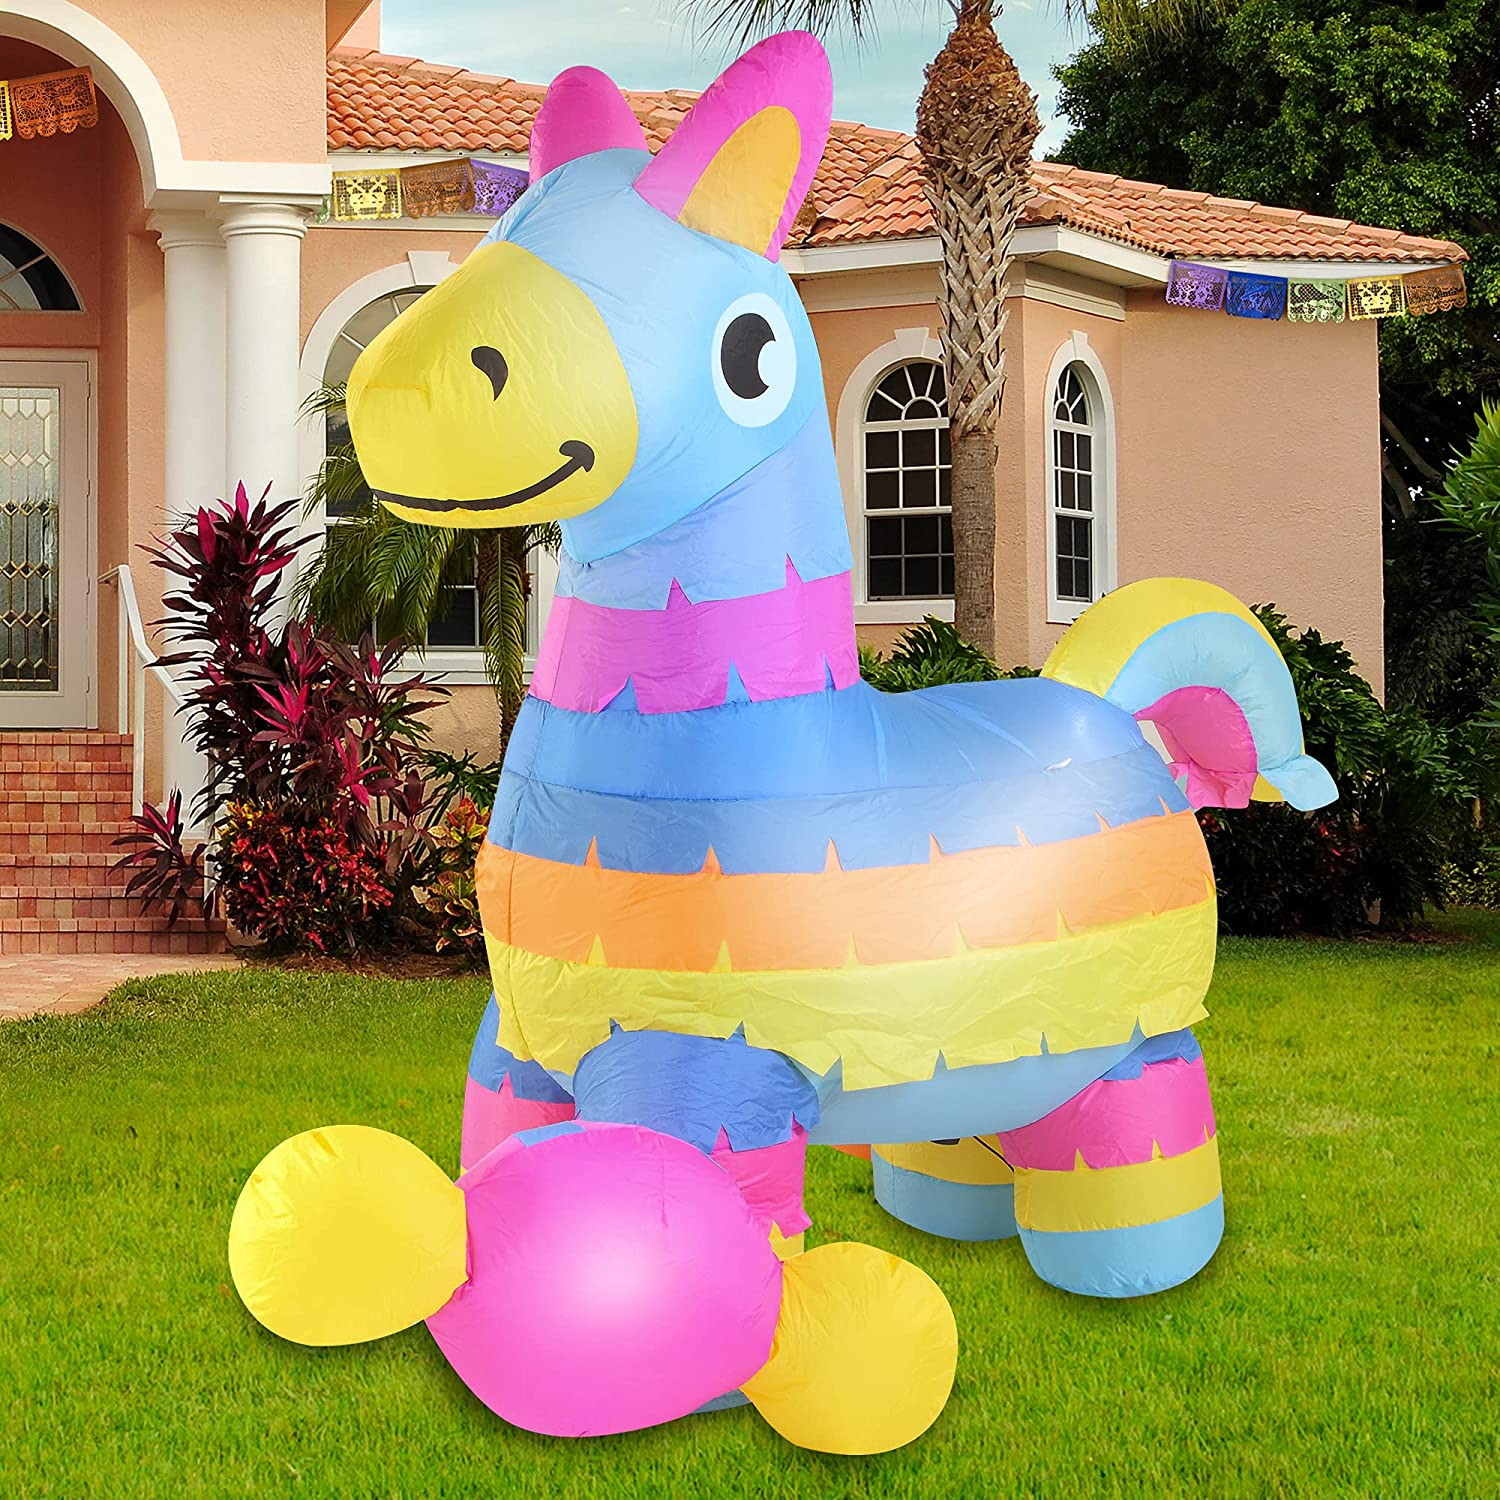 Joiedomi Cinco De Mayo Inflatable Decorations 6 FT Fiesta Pinata with Build-in LEDs Blow Up Inflatables for Cinco De Mayo Holiday Party Indoor, Outdoor, Yard, Garden, Lawn Spring Decor